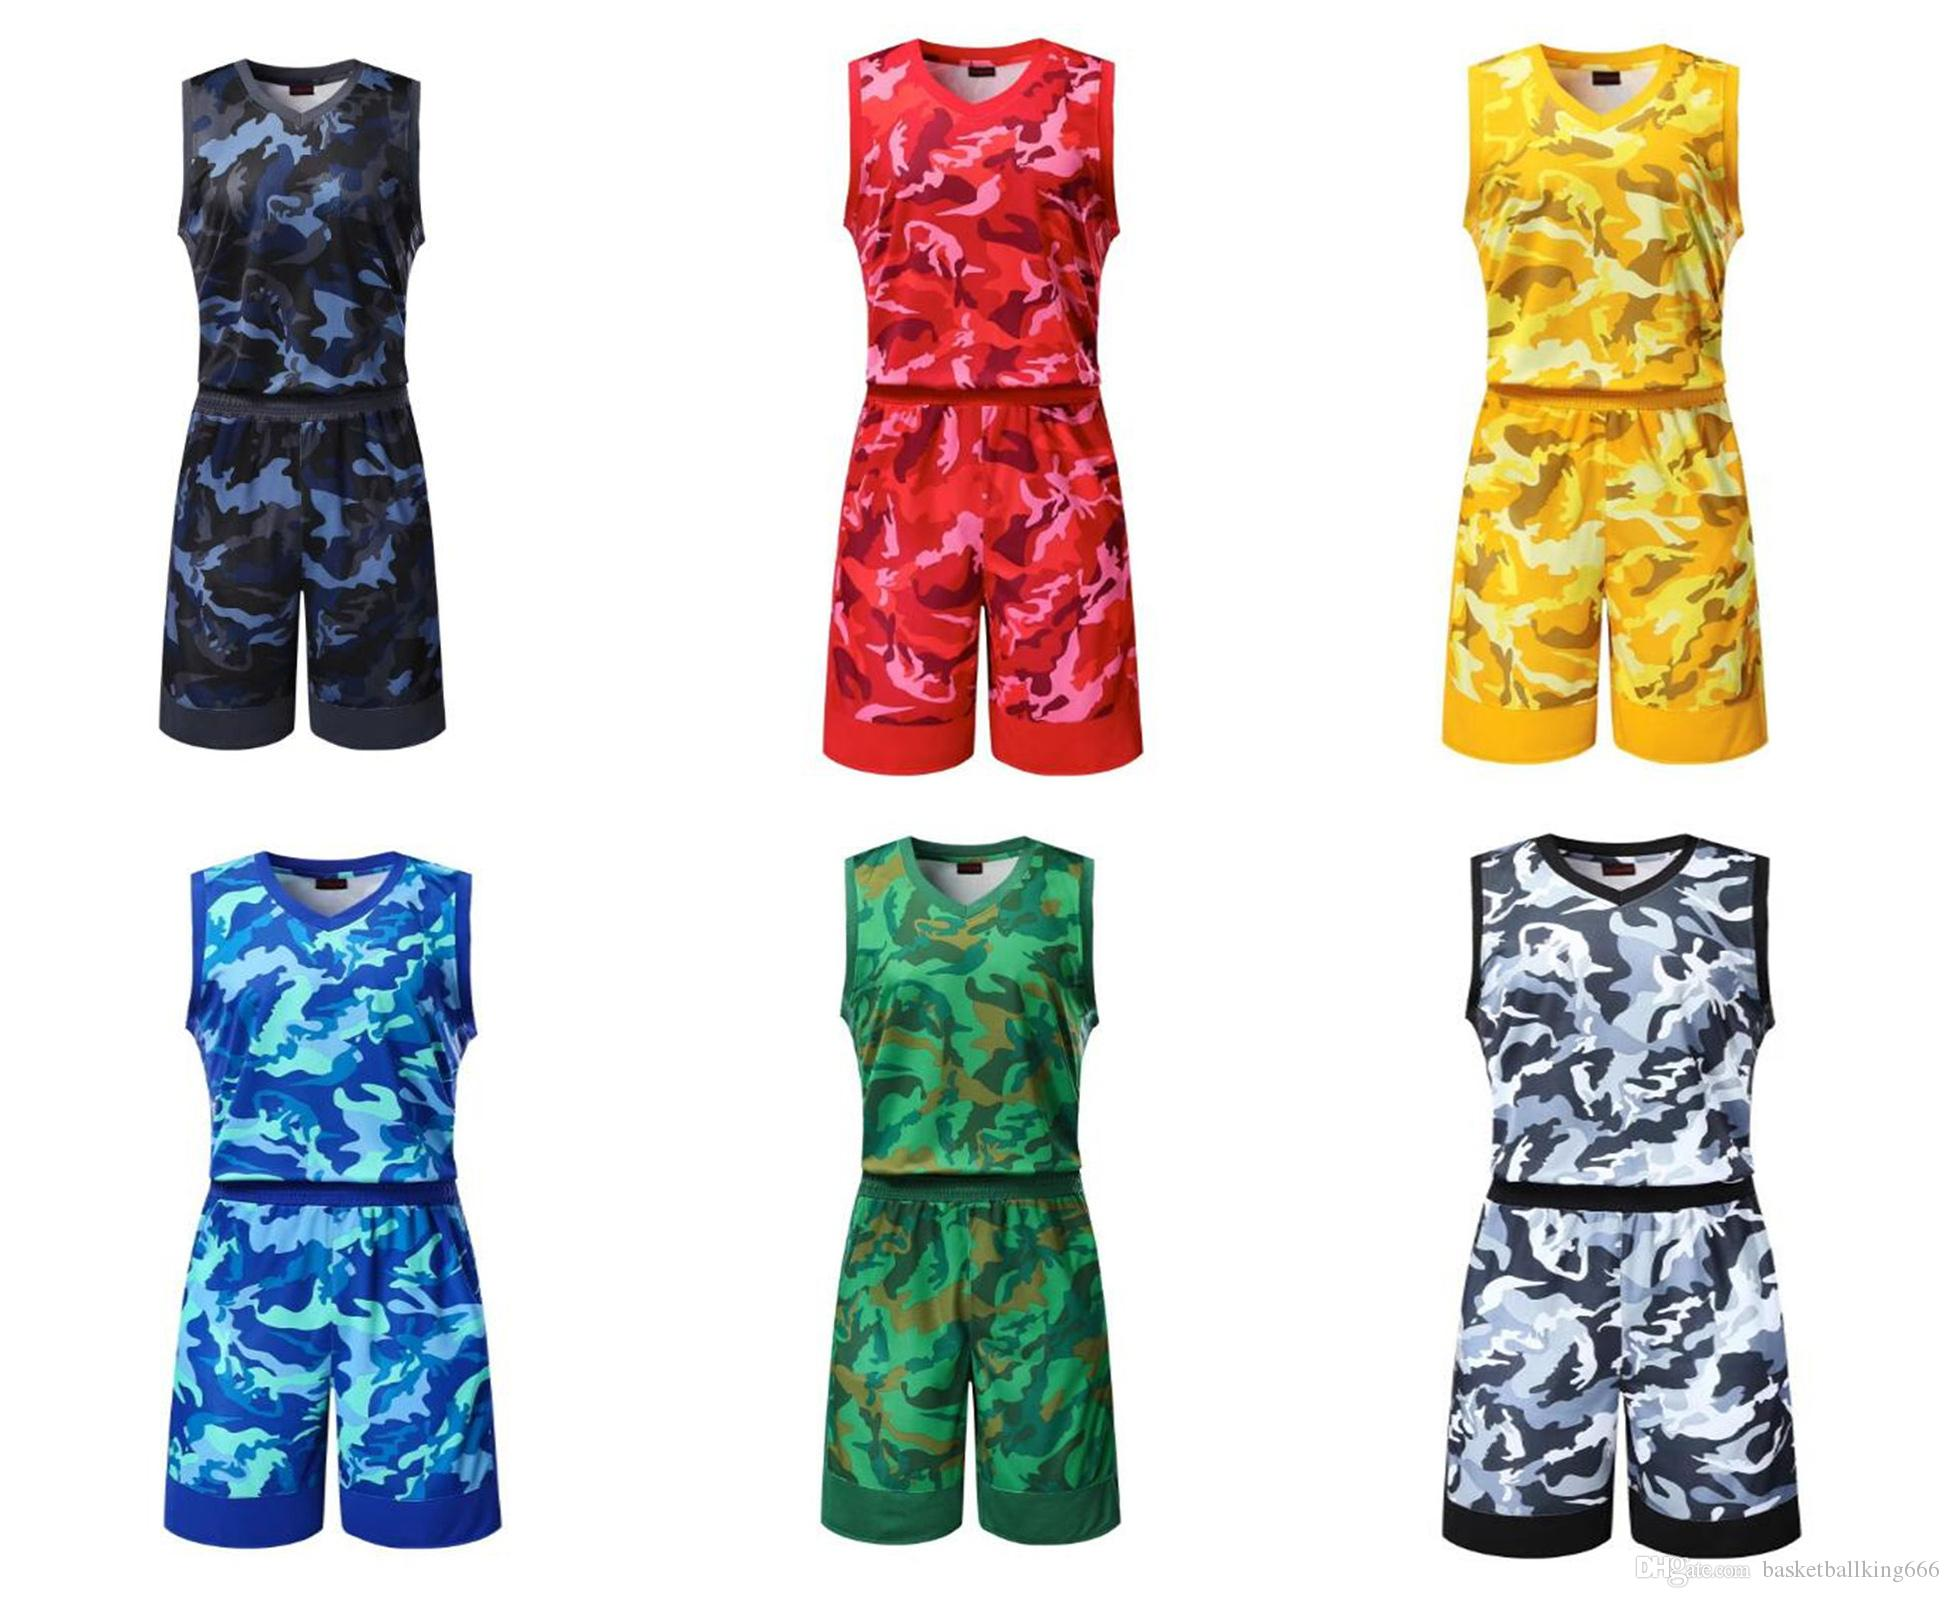 4942115a668d 2019 Hot Selling New Camouflage Basketball Uniforms